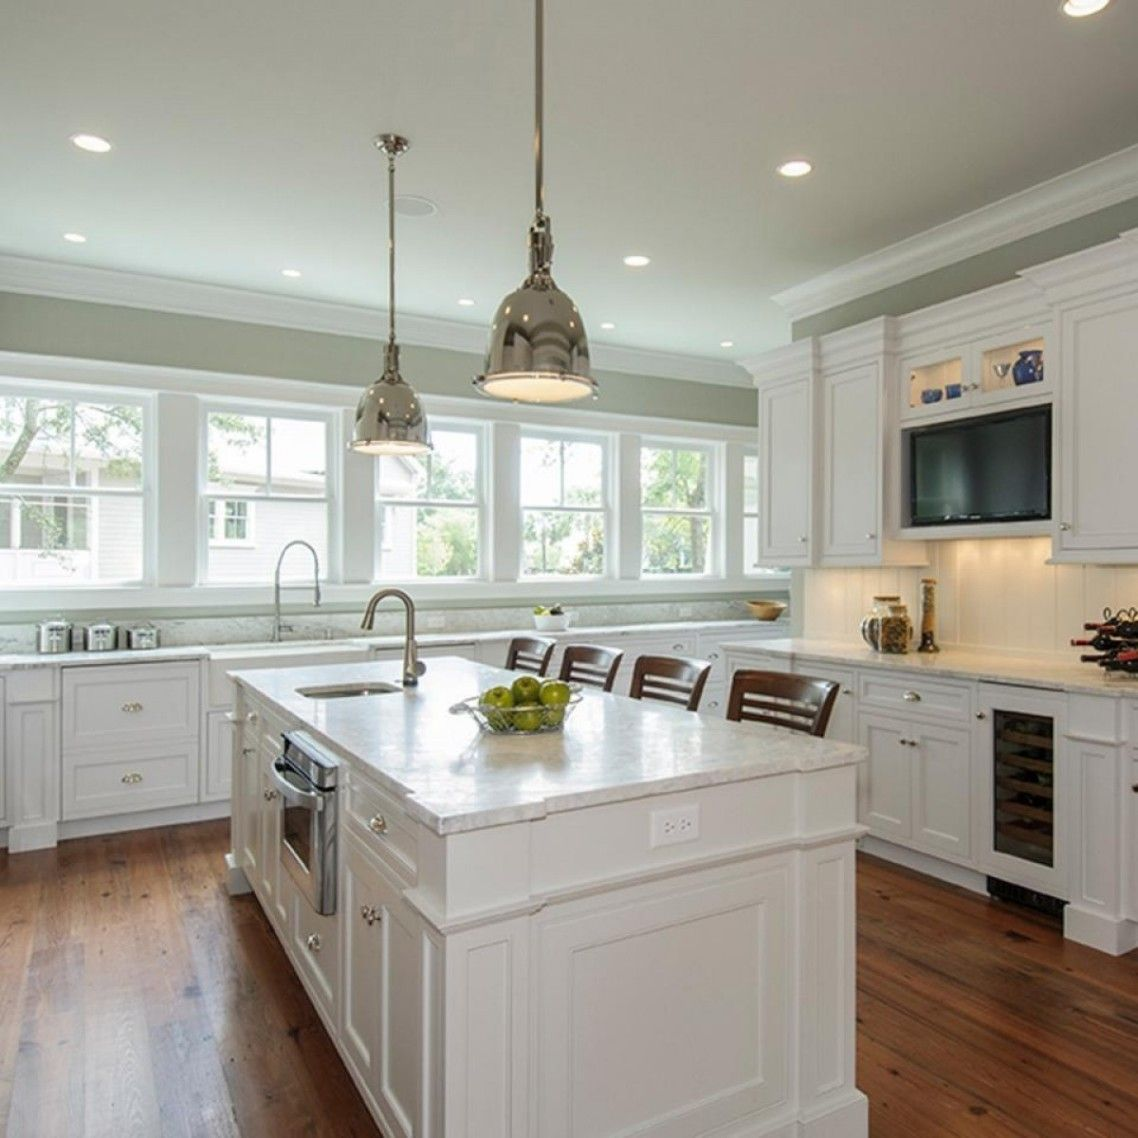 Awesome white brown wood stainless glass cool design white kitchen